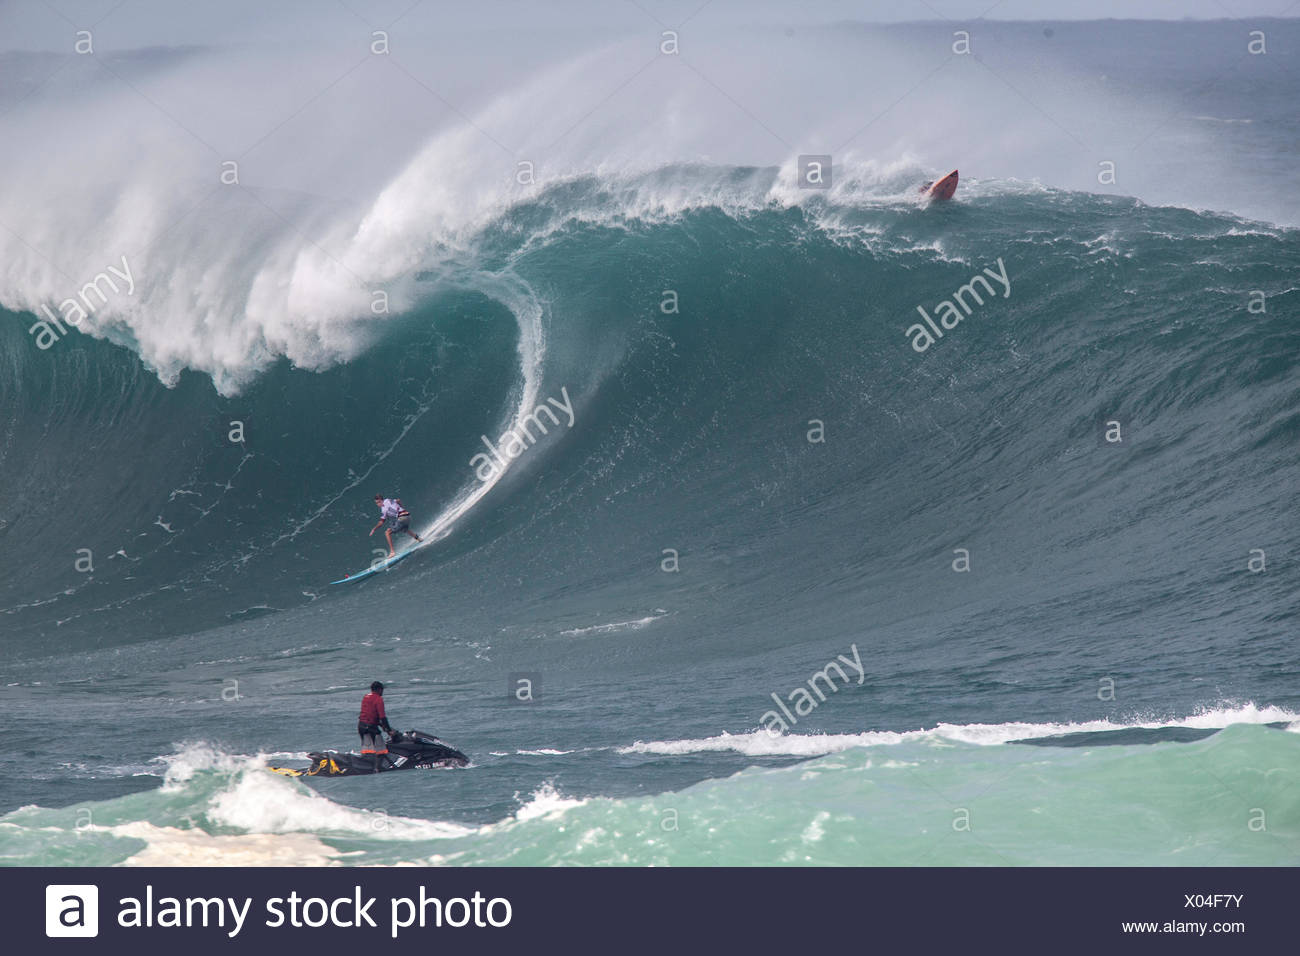 a89e0f92ce Mark healey surfing a huge wave at the Eddie Aikau invitational big wave  surfing event